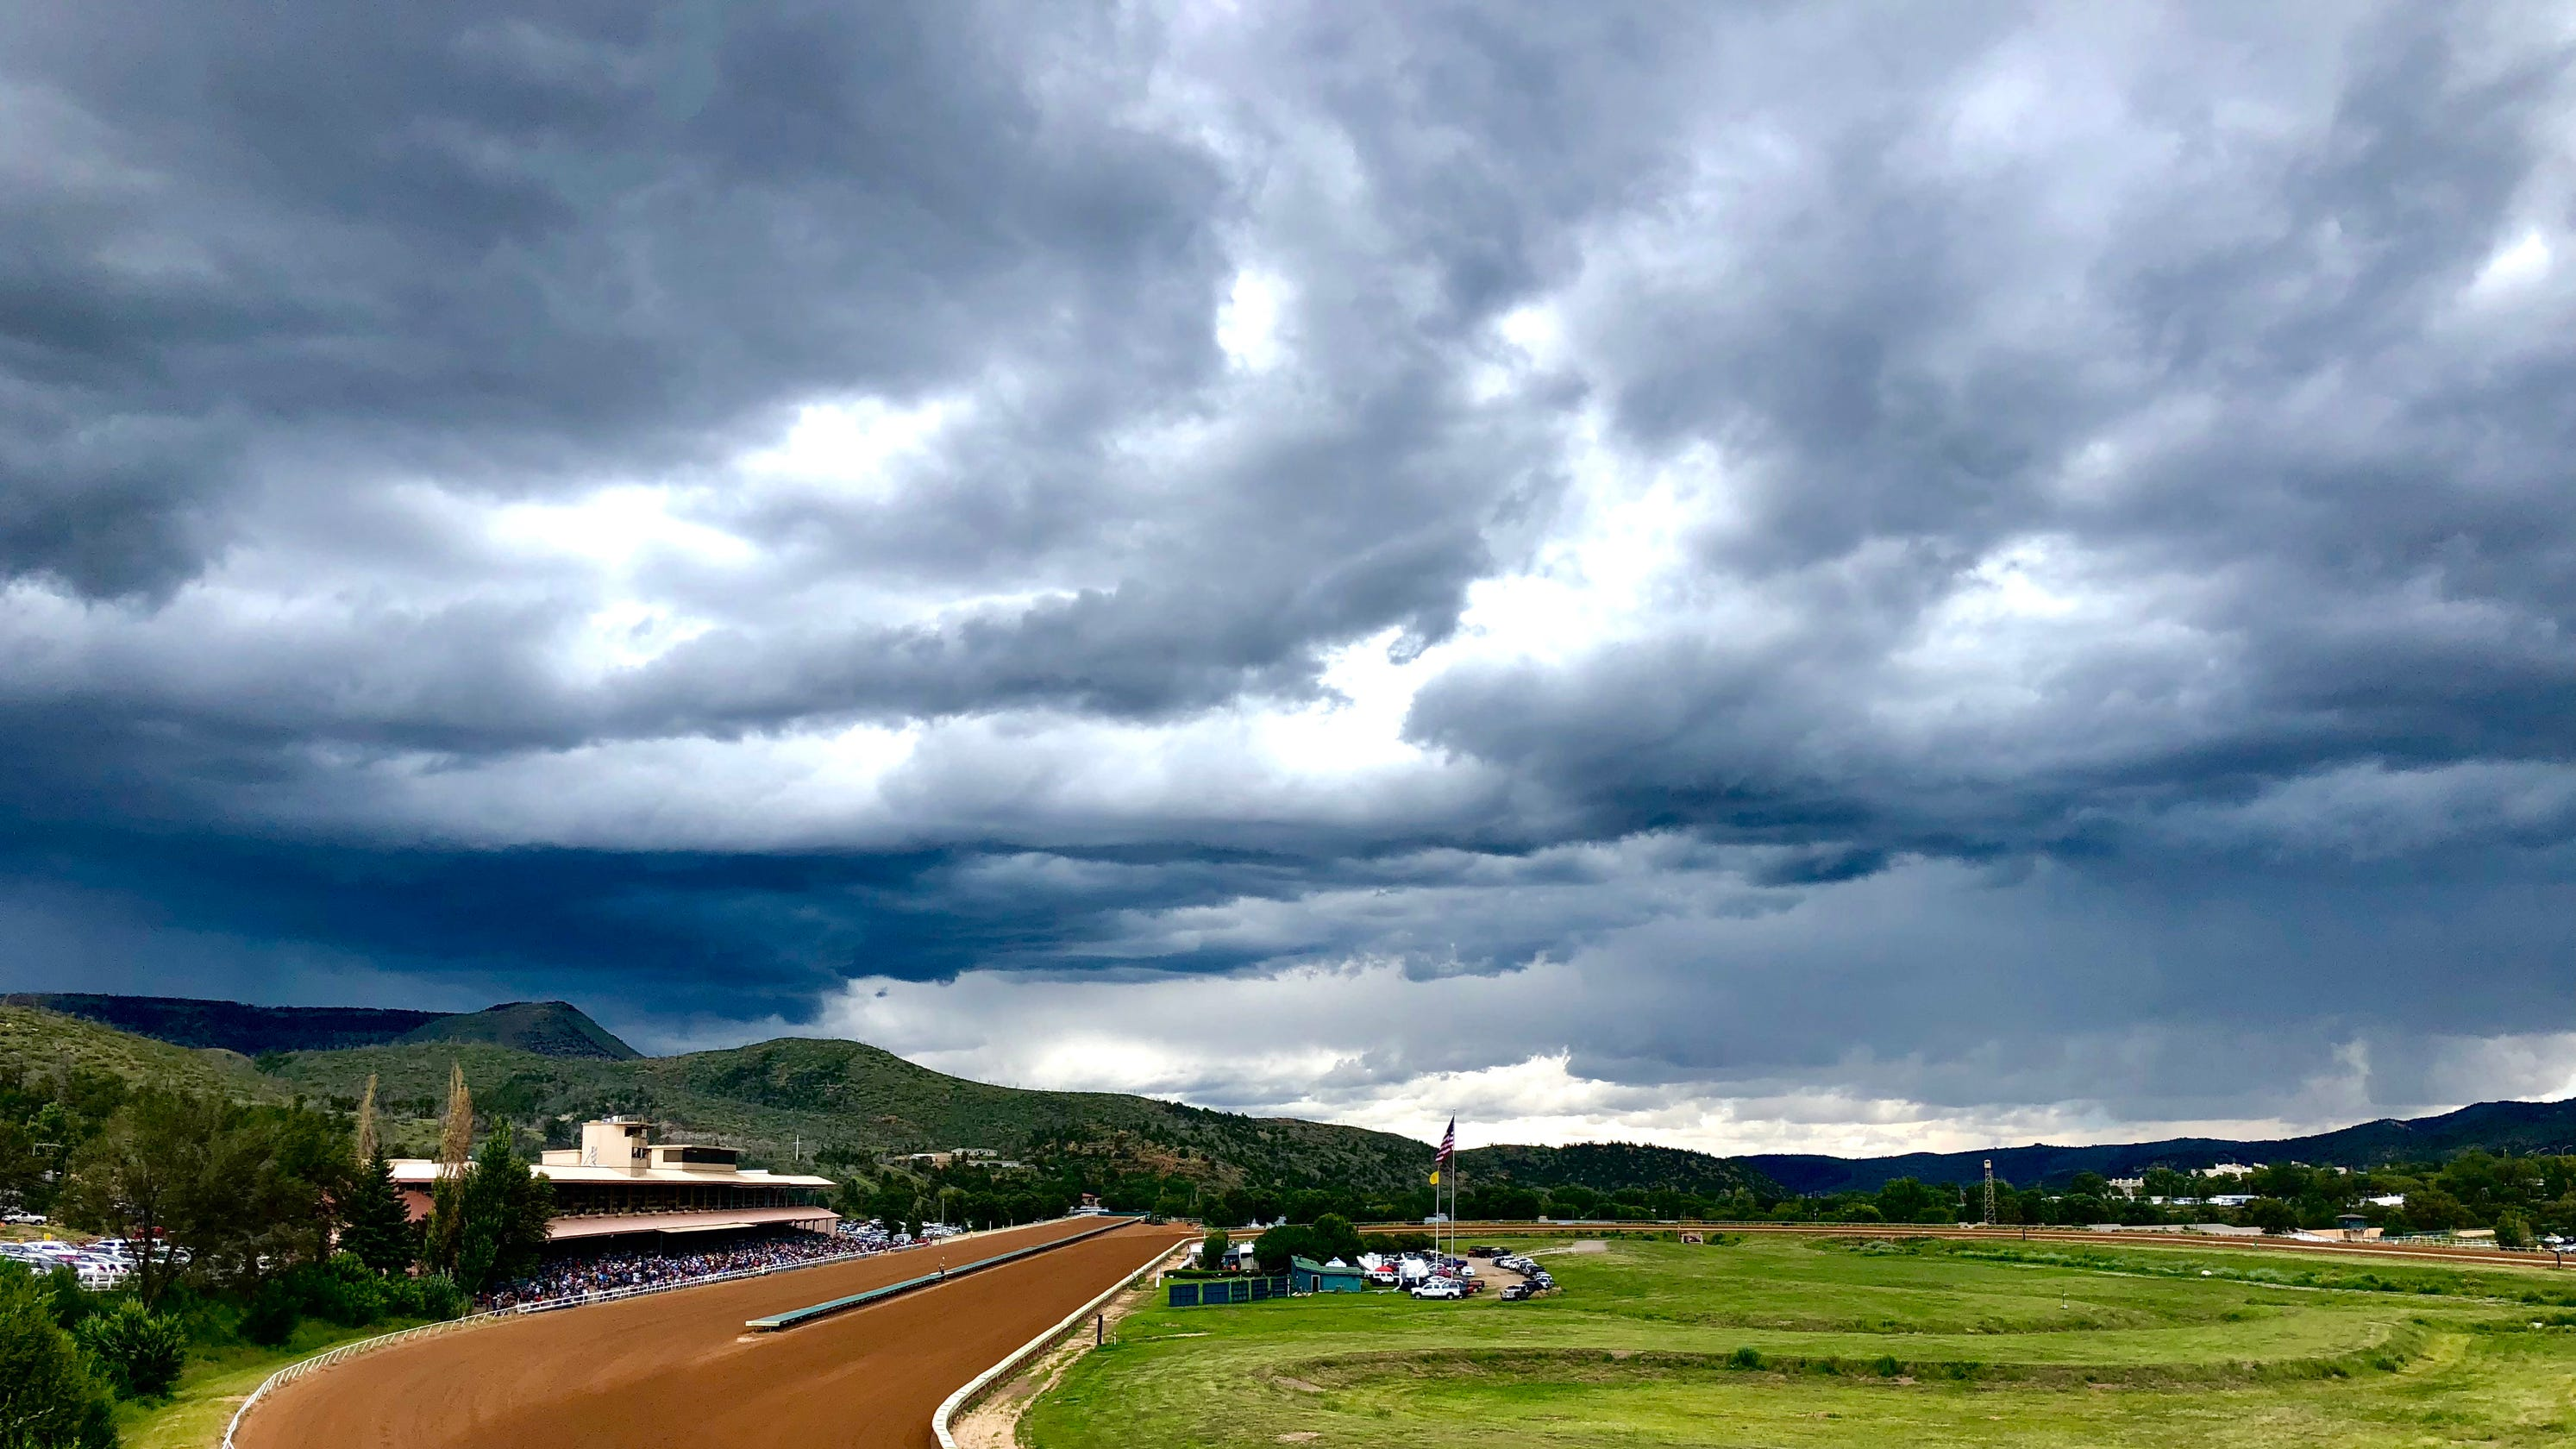 Futurity Trials At Ruidoso Downs Race Track: Live Updates